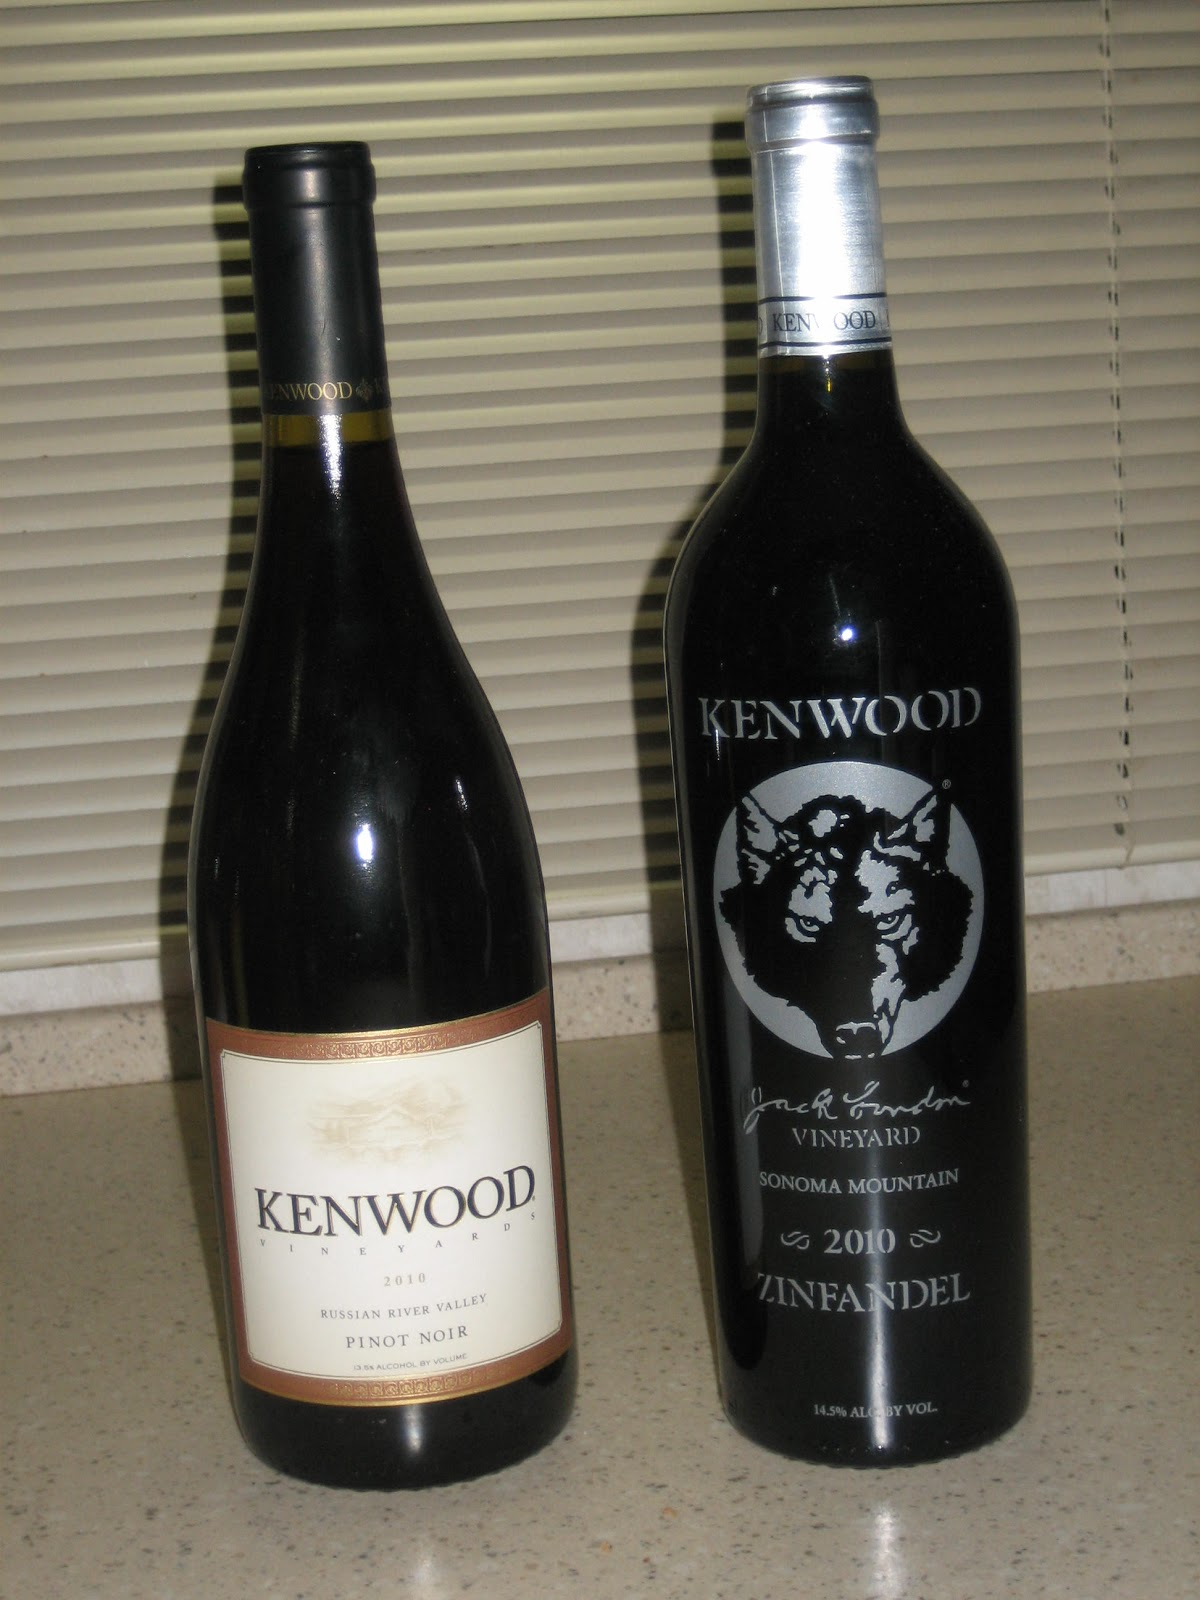 Empire wine and liquor coupons